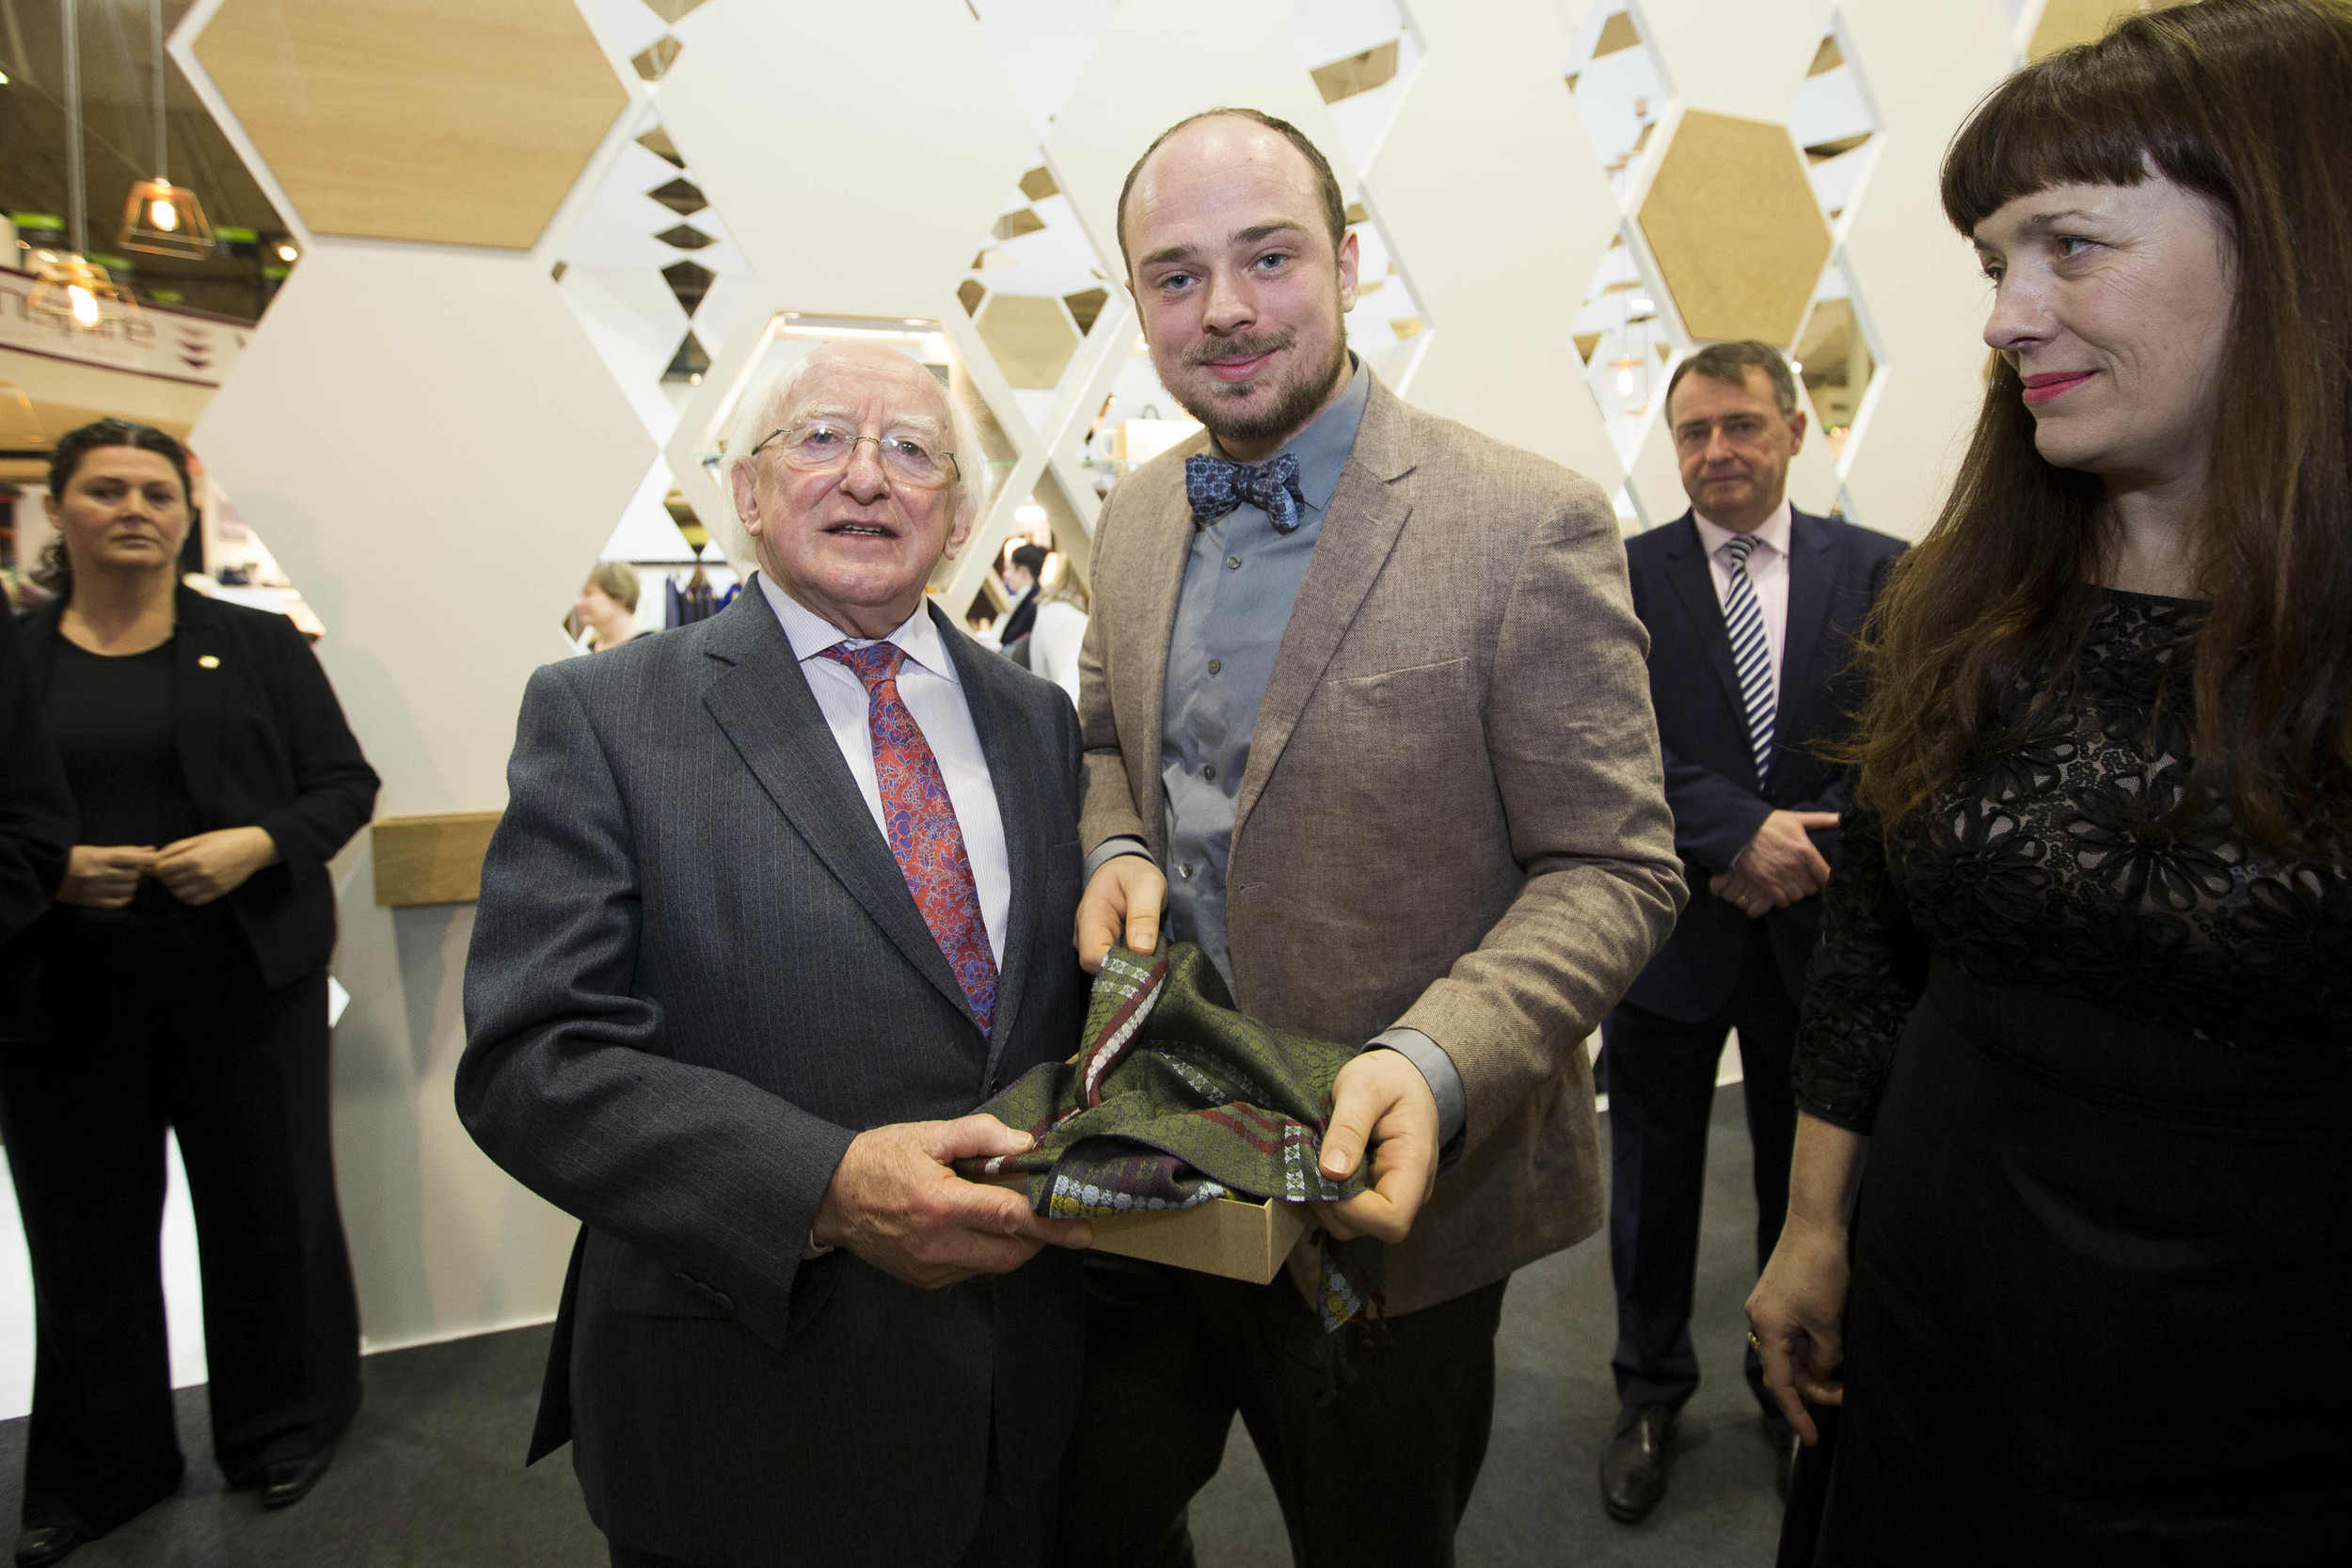 With President of Ireland, Michael D Higgins and 'Dublin from the Hills' Woven Silk Scarf, official gift from DCCOI at opening of Showcase 2015.